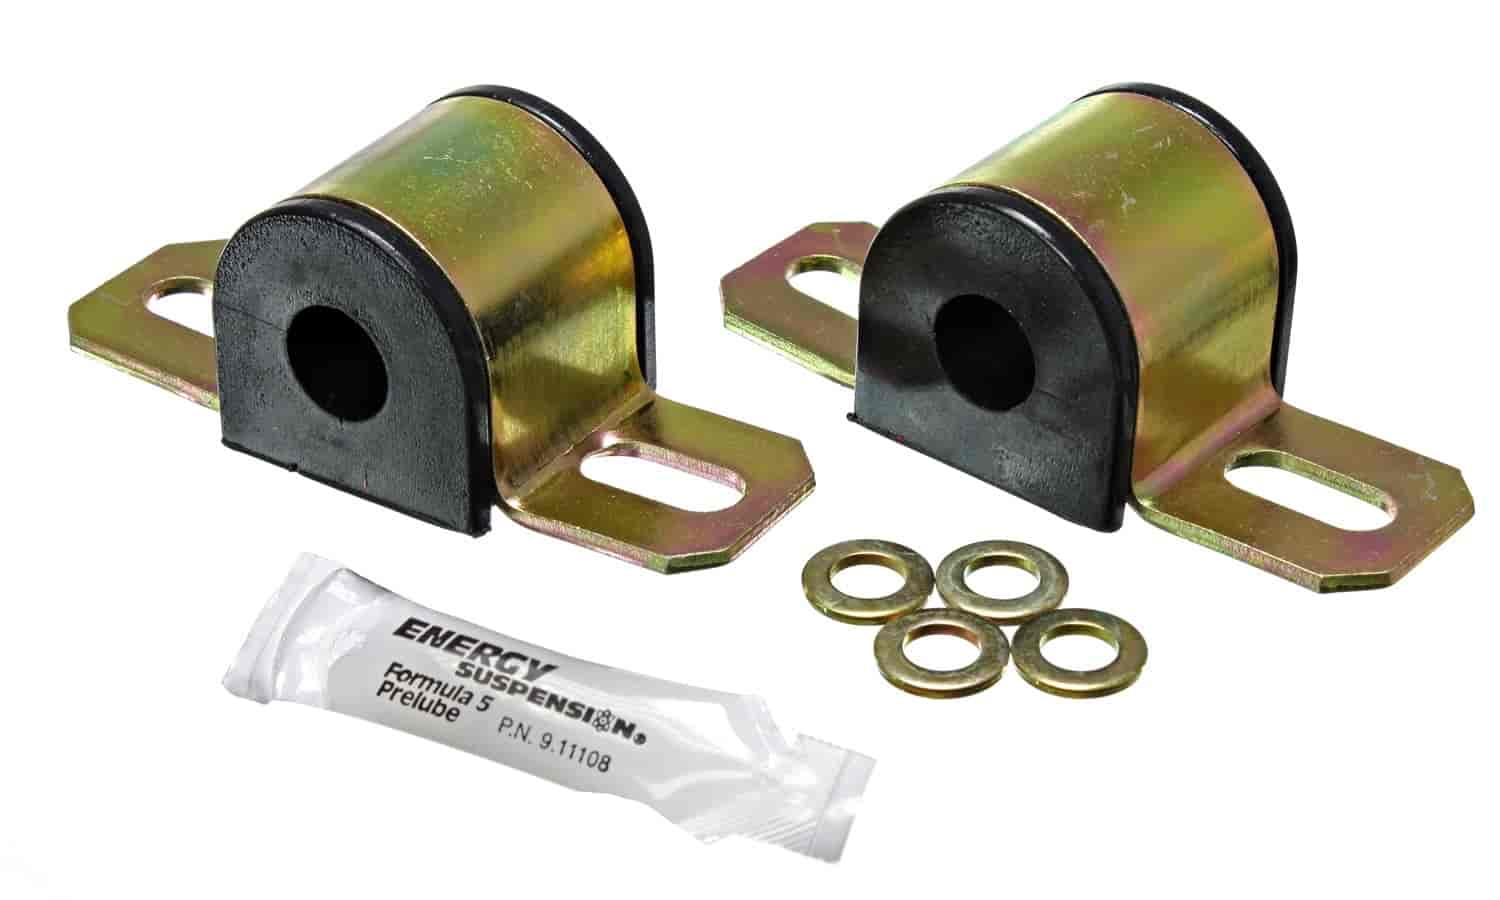 Energy Suspension 9-5101G - Energy Suspension Universal Non-Greaseable Sway Bar Bushings